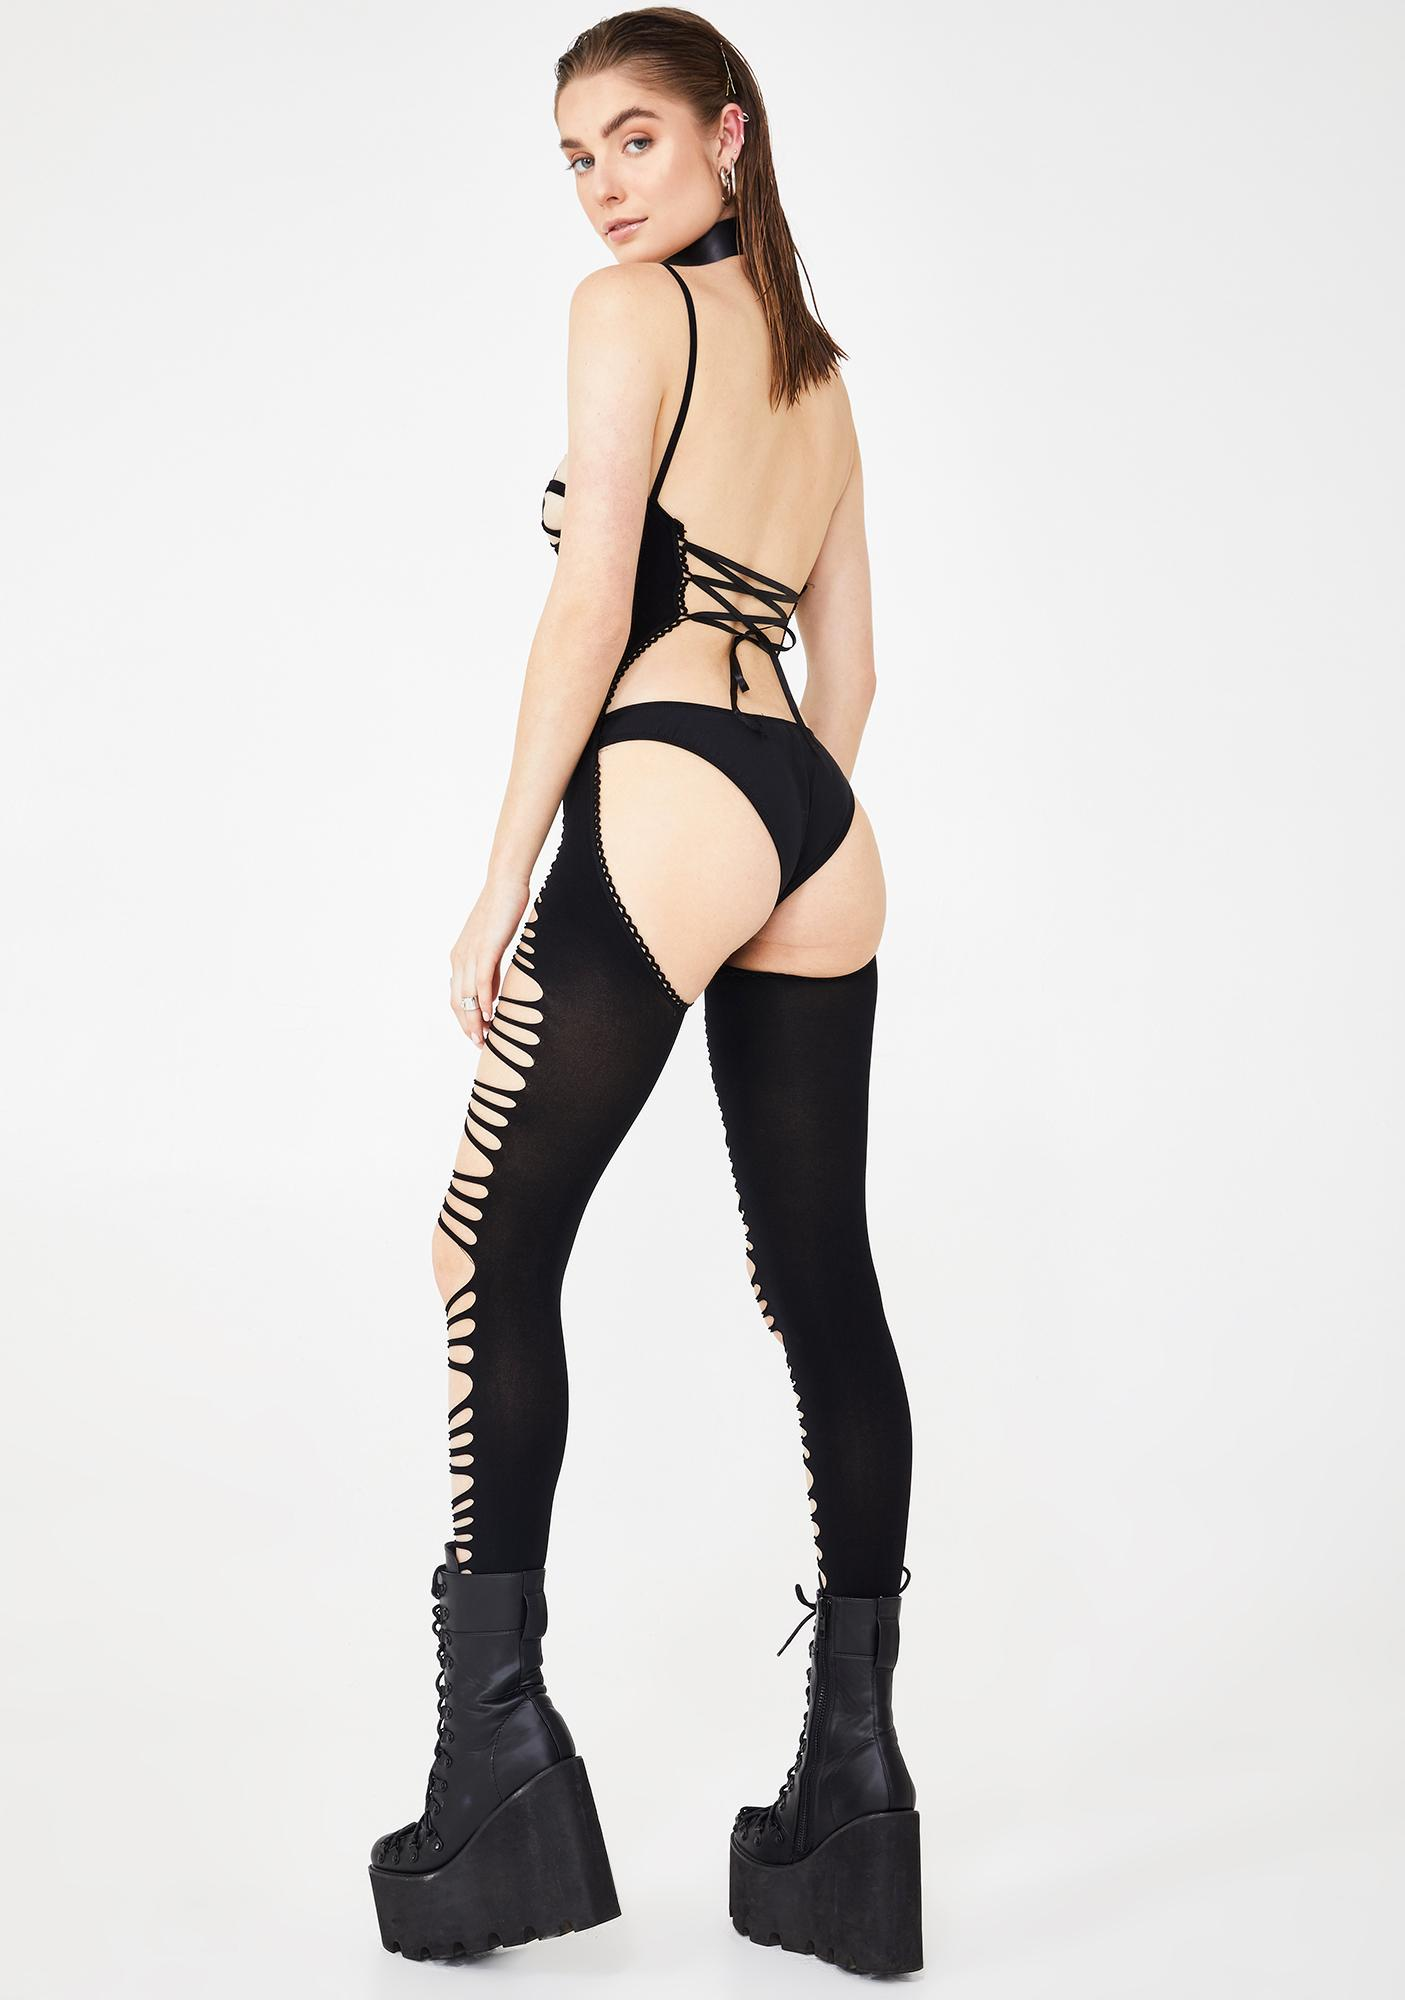 Follow My Command Cut-Out Bodystocking